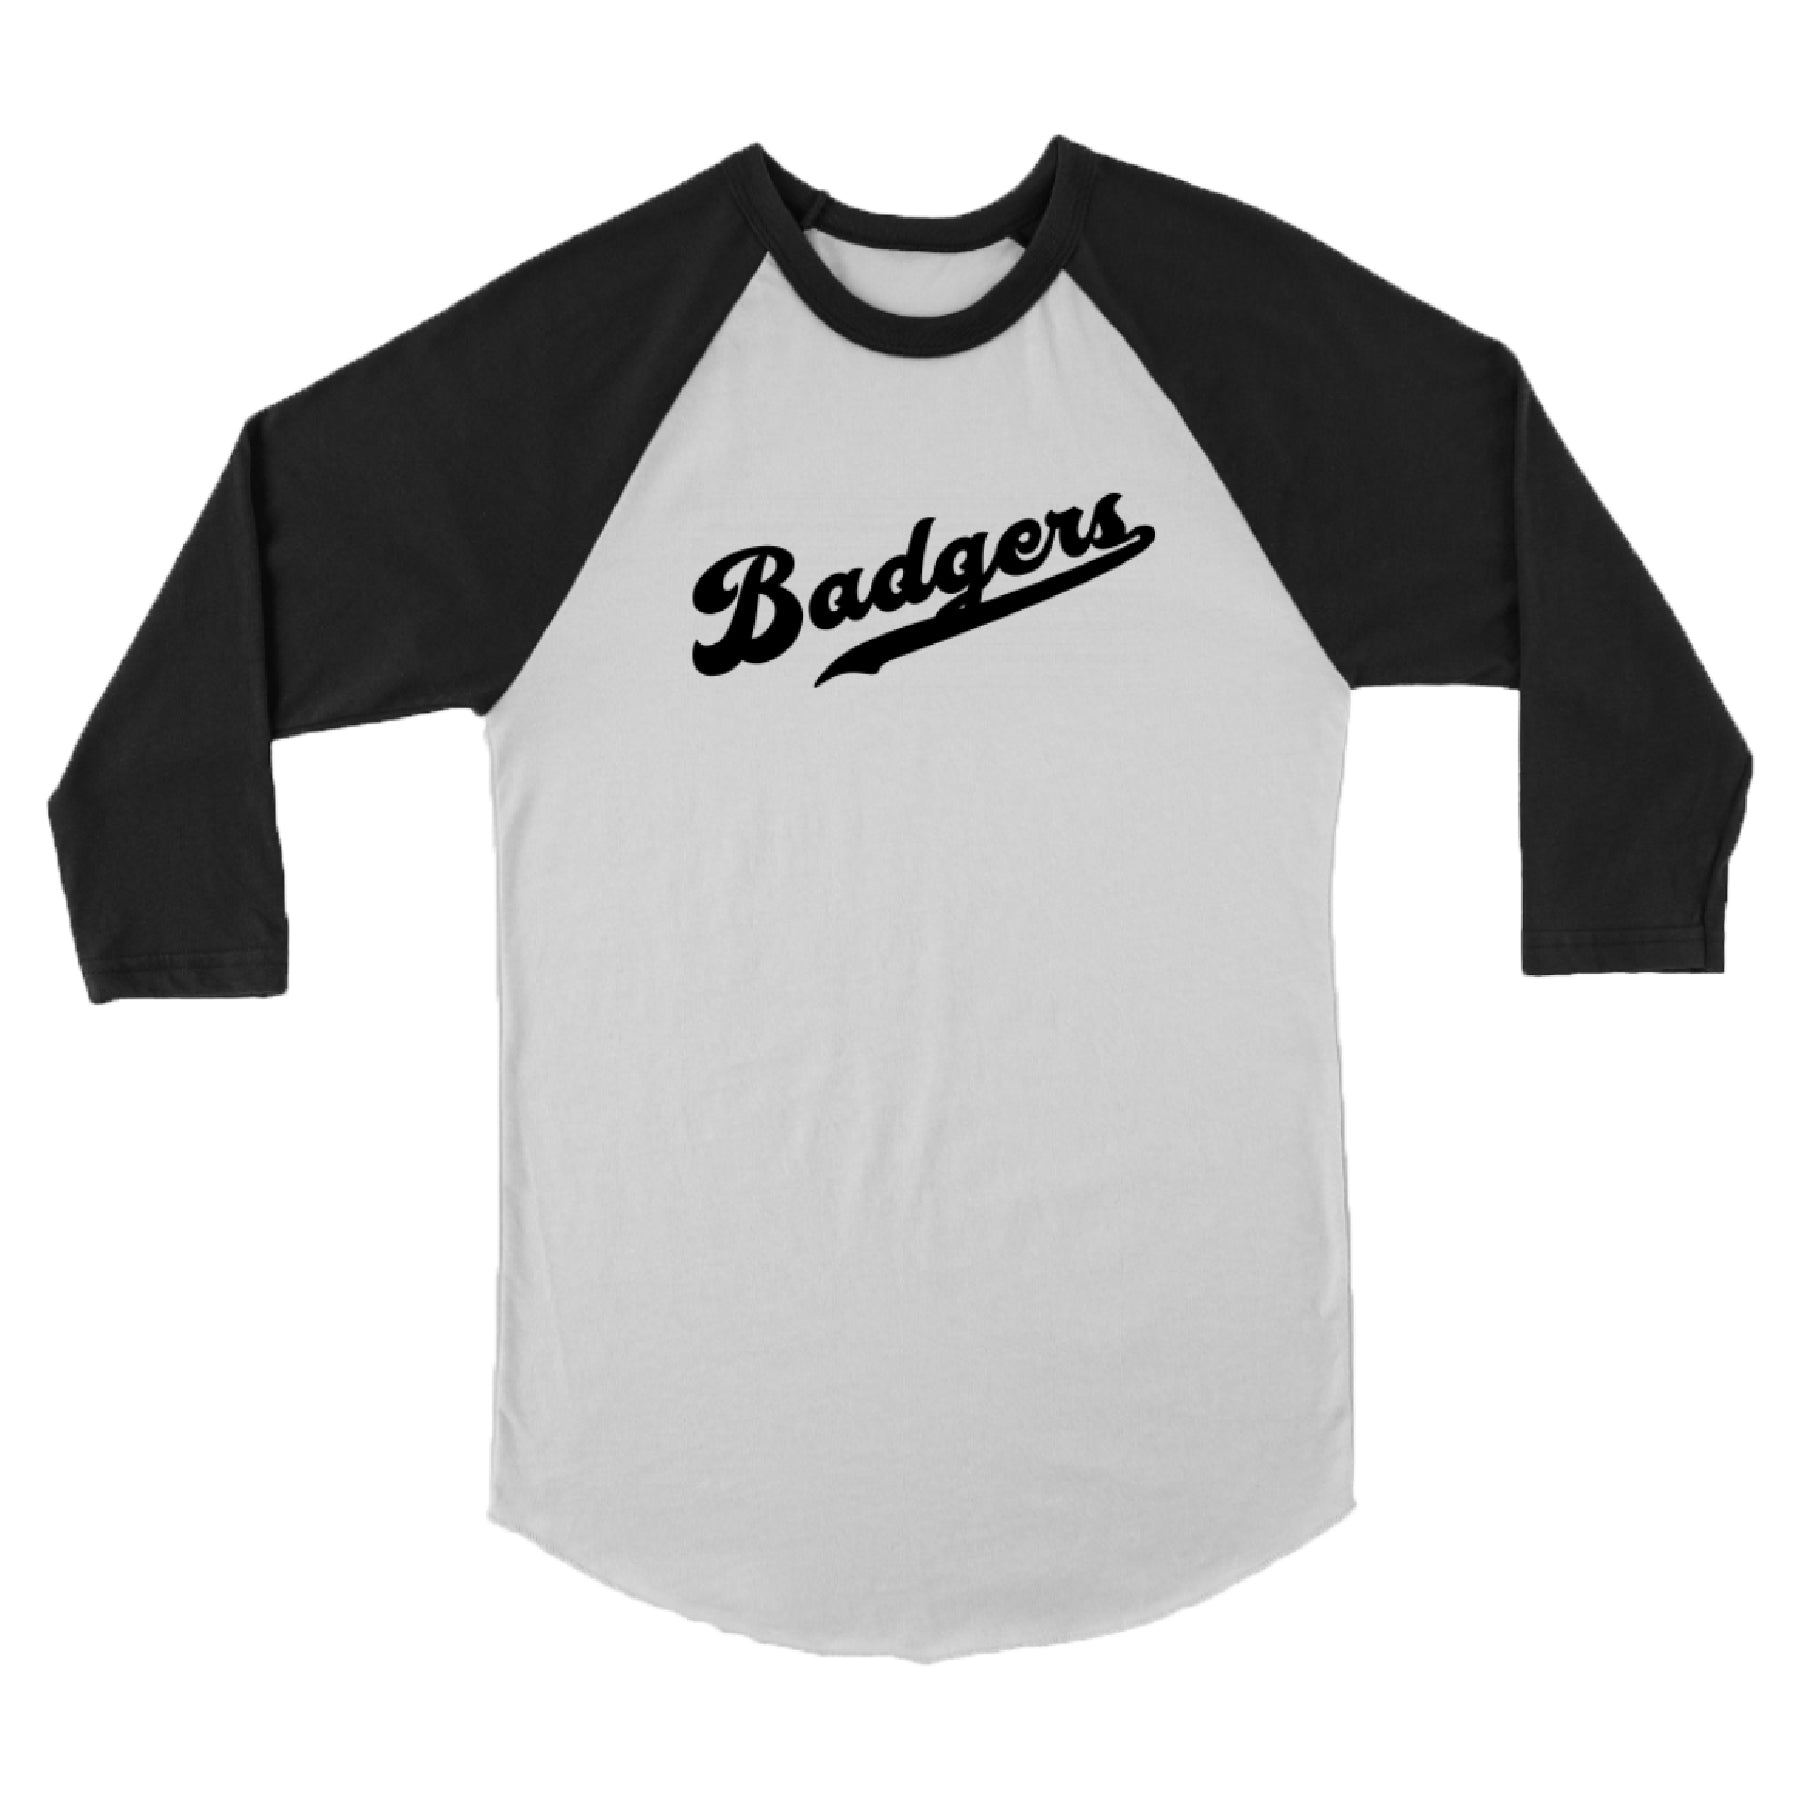 Badgers Baseball Tee